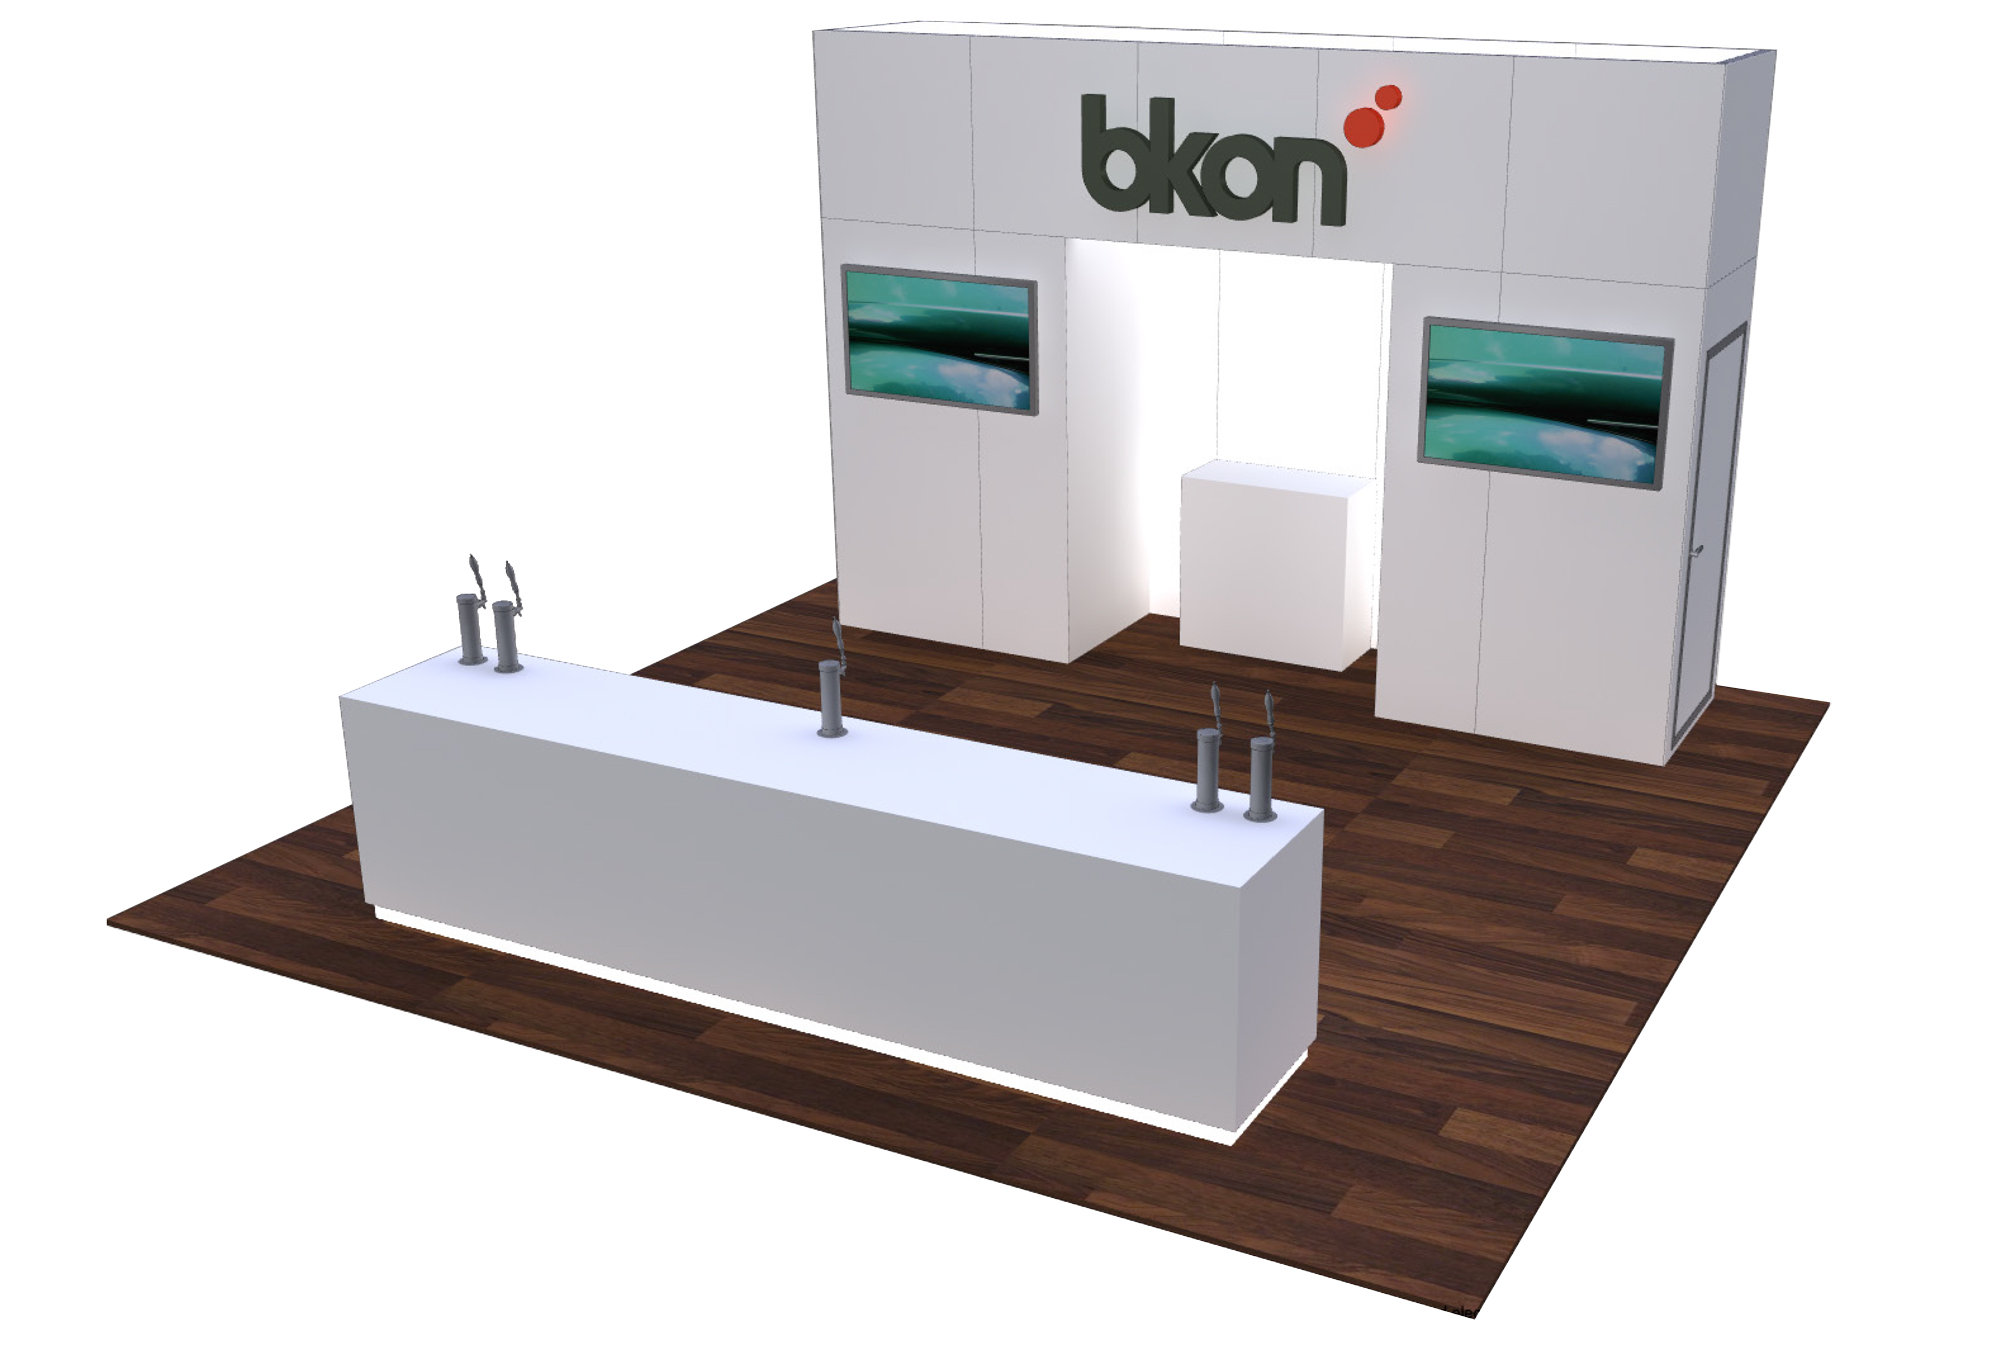 20 x 20 trade show exhibit rental